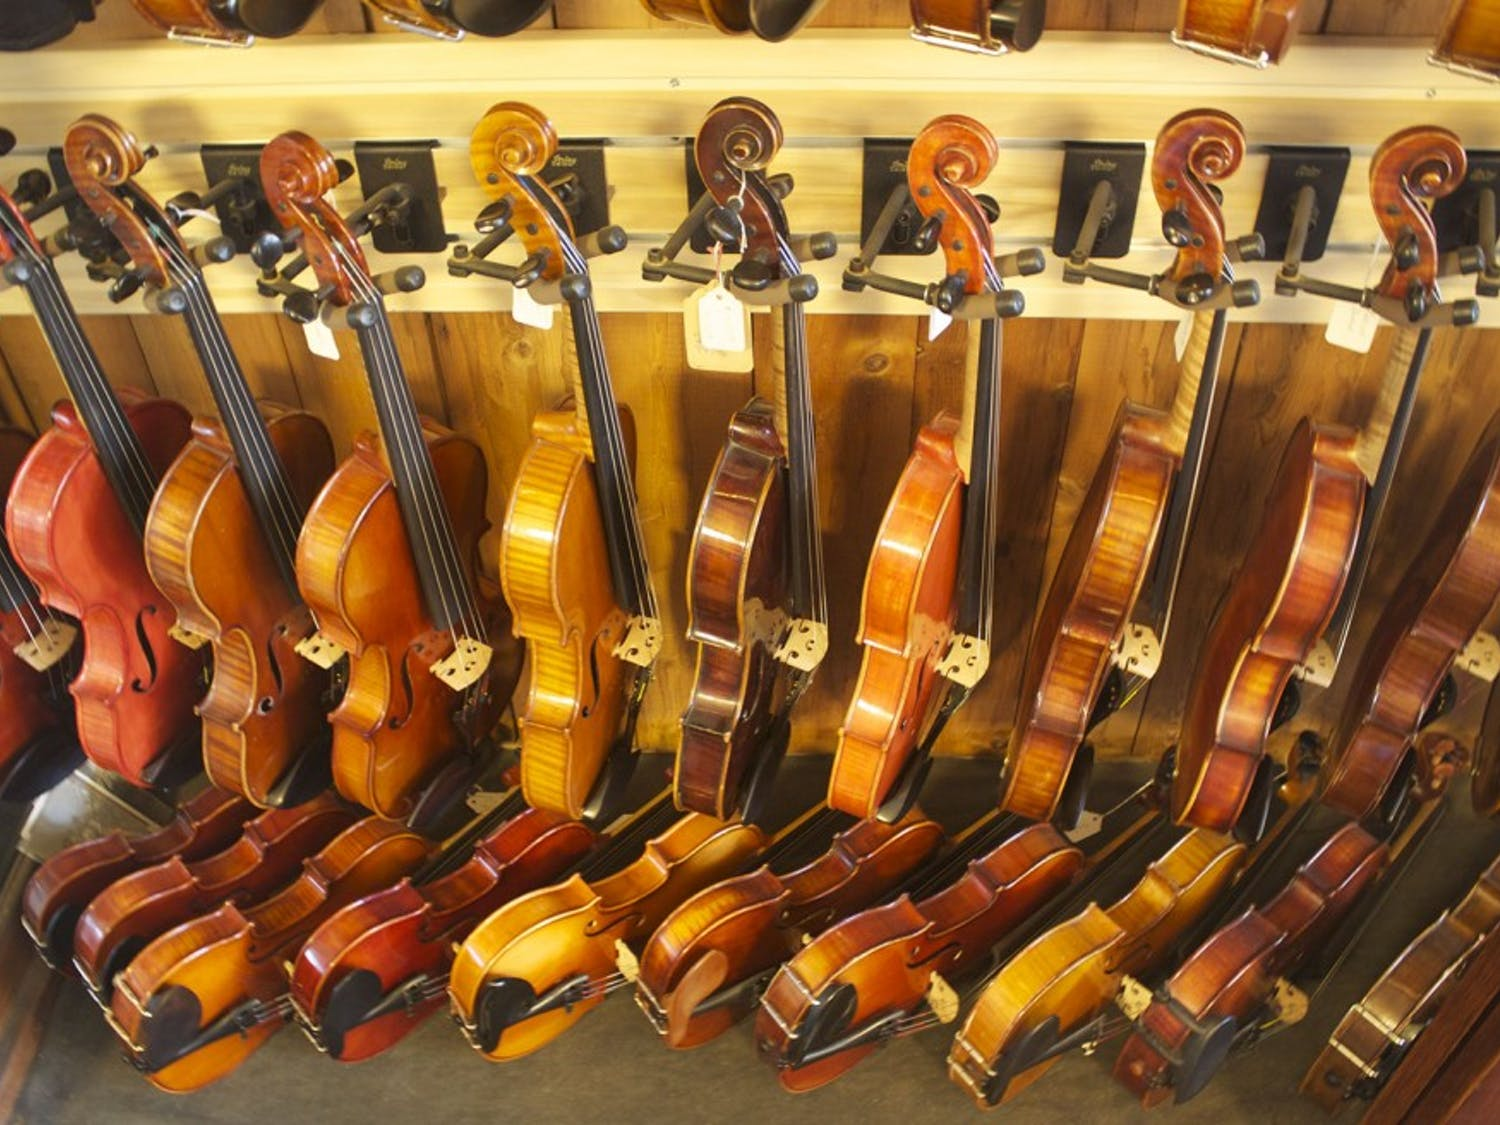 Used, carefully restored string instruments sit waiting for their next owner at Spruce Tree Music & Repair in Madison.